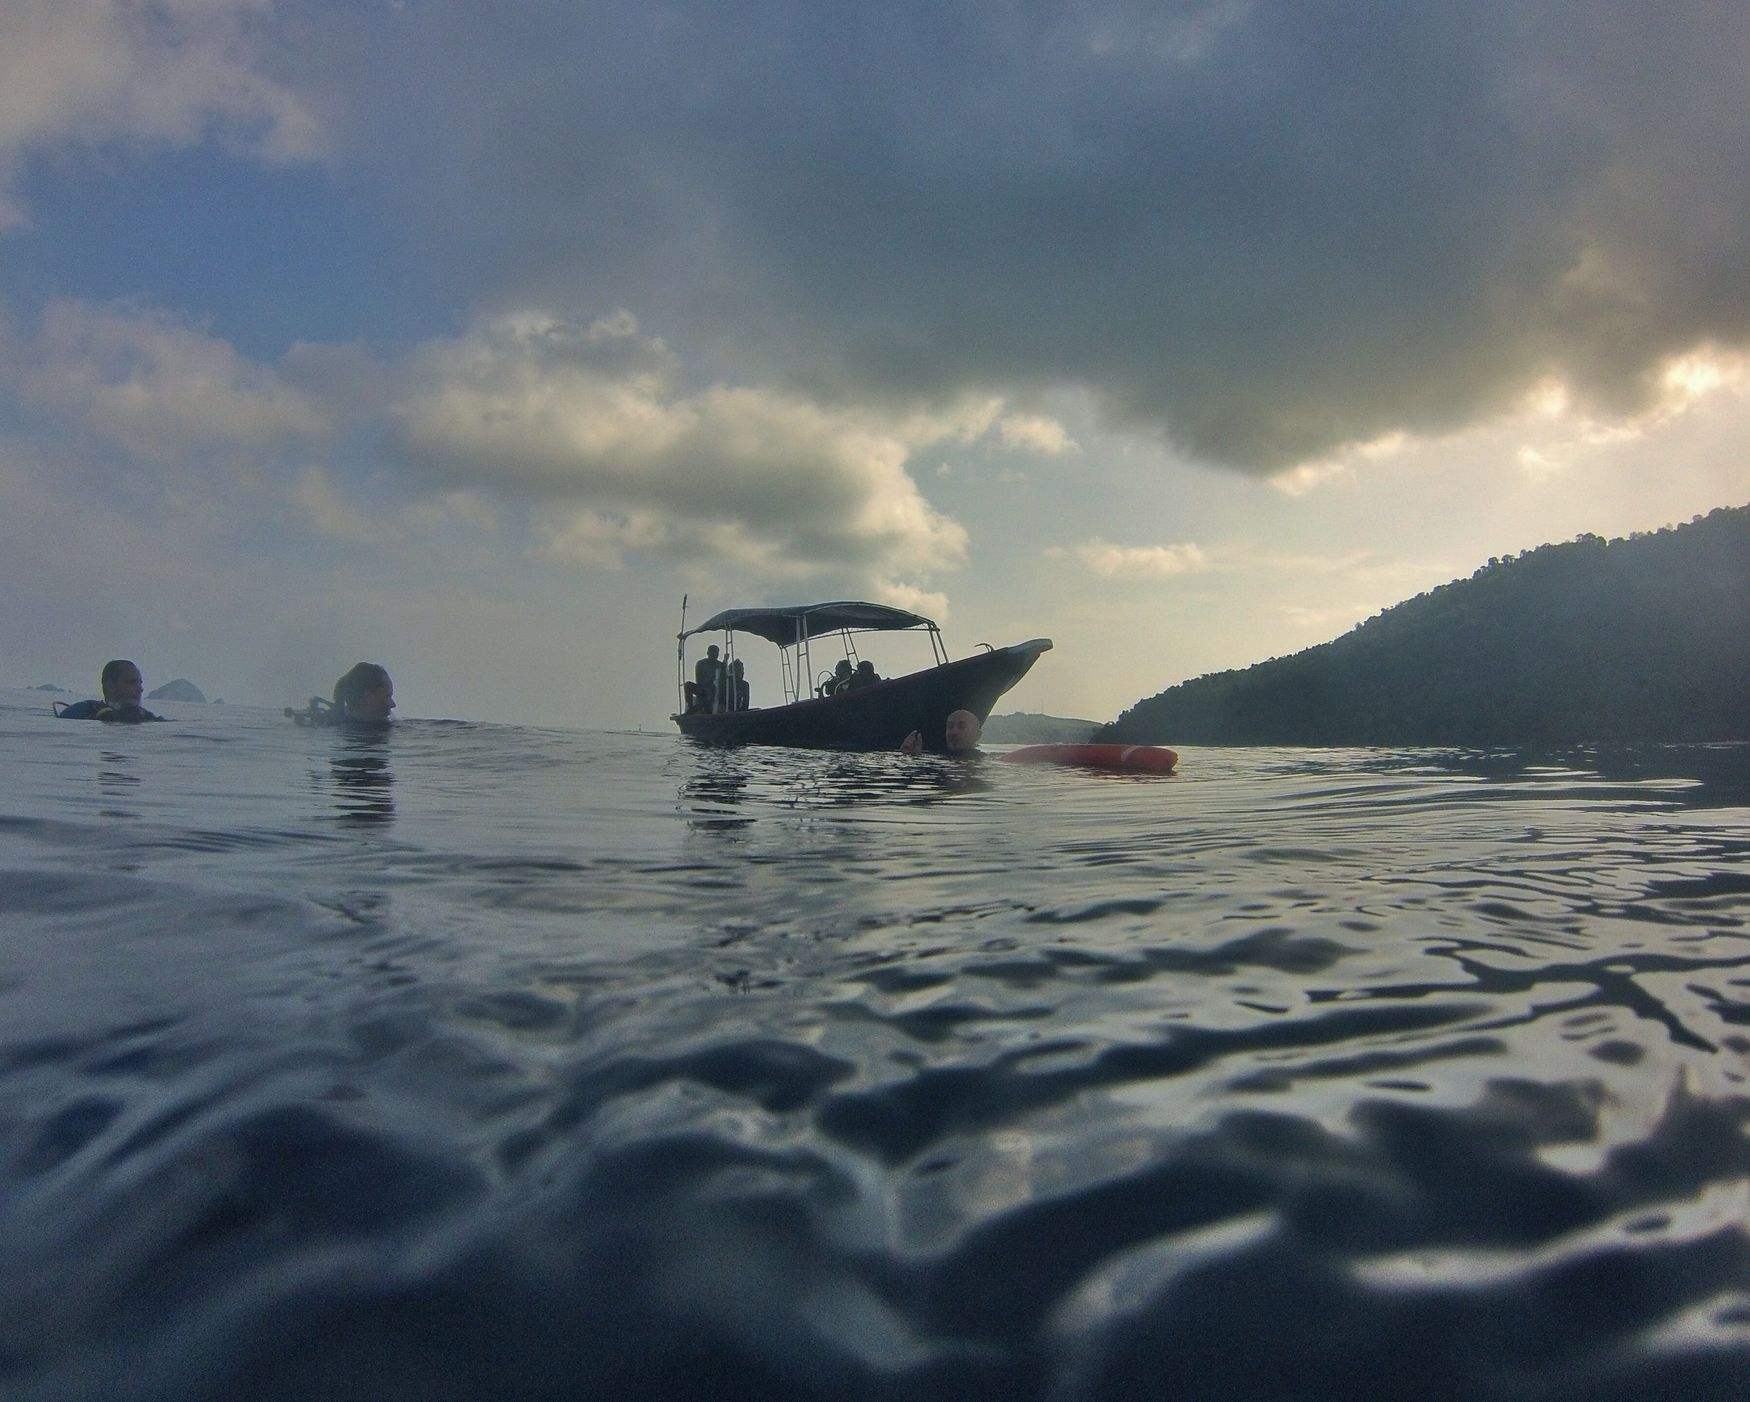 Save Haven for tired divers @ Turtle Bay Divers, pulau Perhentian